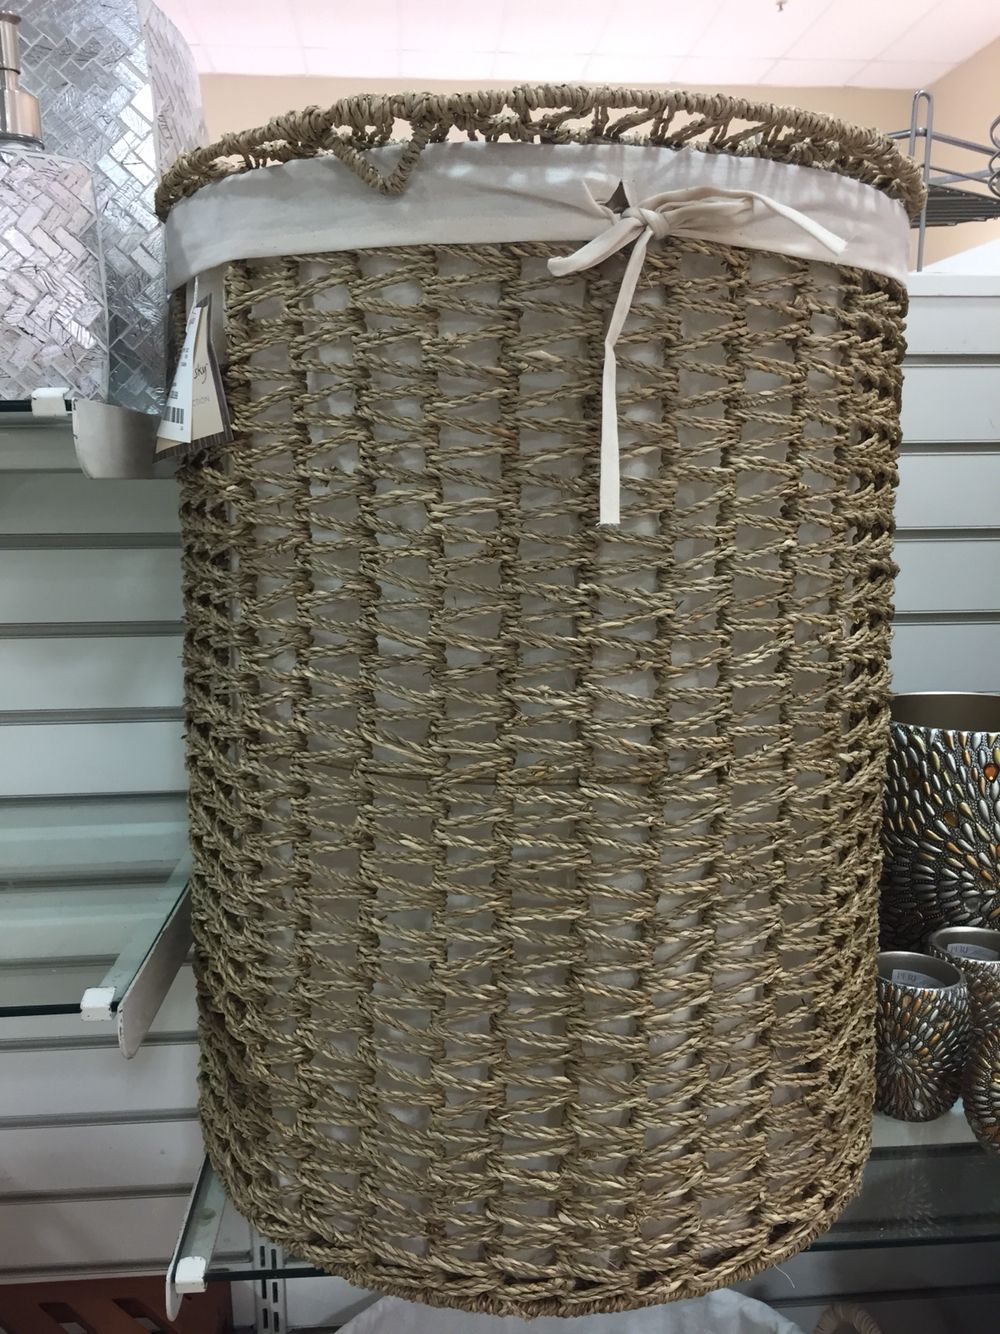 Laundry Basket From Homegoods Bedroom Decor Home Goods Laundry